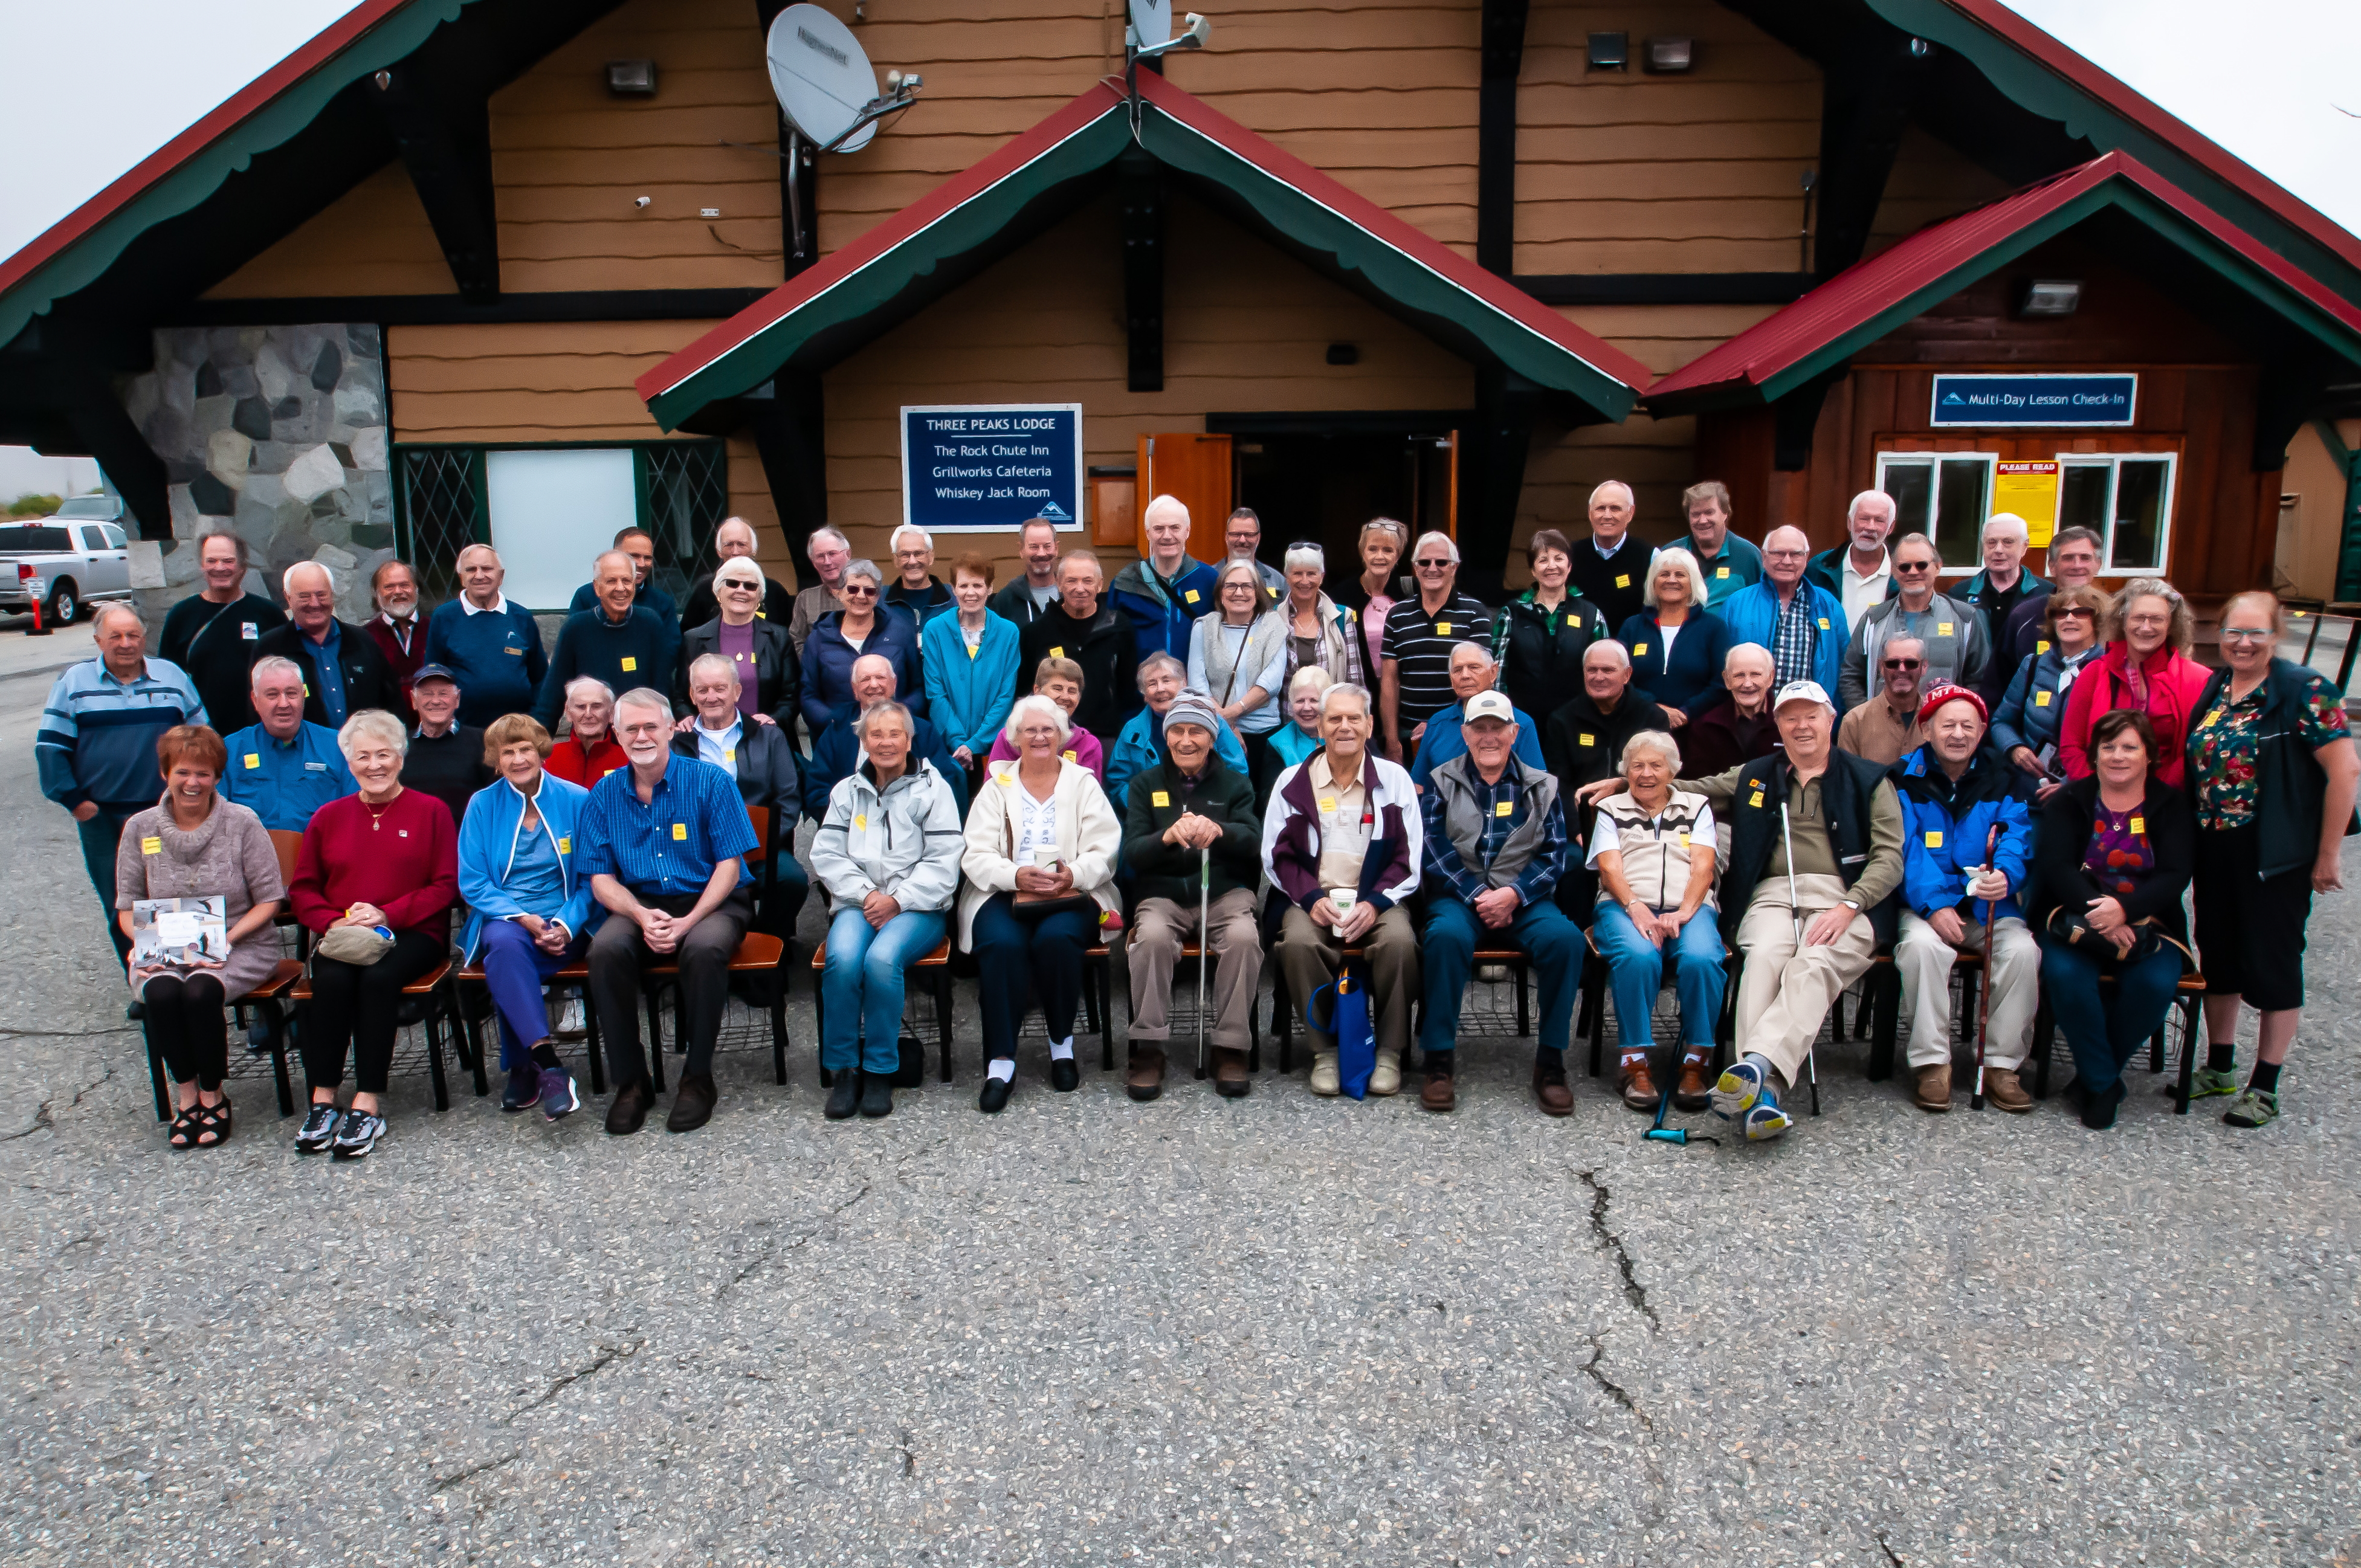 Pioneer Skiers' Reunion, Mt. Seymour, September 18, 2019. Photo by Helmer Sieber